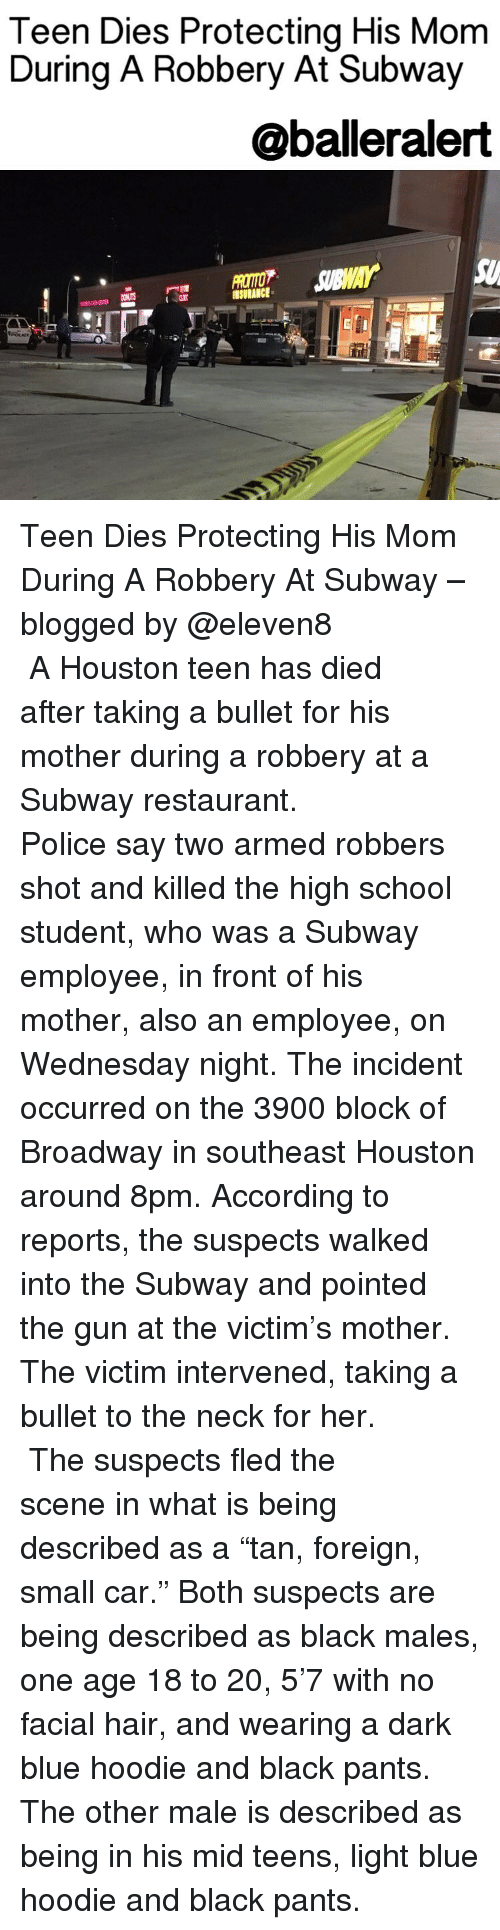 "hoody: Teen Dies Protecting His Mom  During A Robbery At Subway  @balleralert Teen Dies Protecting His Mom During A Robbery At Subway – blogged by @eleven8 ⠀⠀⠀⠀⠀⠀⠀⠀⠀ ⠀⠀⠀⠀⠀⠀⠀⠀⠀ A Houston teen has died after taking a bullet for his mother during a robbery at a Subway restaurant. ⠀⠀⠀⠀⠀⠀⠀⠀⠀ ⠀⠀⠀⠀⠀⠀⠀⠀⠀ Police say two armed robbers shot and killed the high school student, who was a Subway employee, in front of his mother, also an employee, on Wednesday night. The incident occurred on the 3900 block of Broadway in southeast Houston around 8pm. According to reports, the suspects walked into the Subway and pointed the gun at the victim's mother. The victim intervened, taking a bullet to the neck for her. ⠀⠀⠀⠀⠀⠀⠀⠀⠀ ⠀⠀⠀⠀⠀⠀⠀⠀⠀ The suspects fled the scene in what is being described as a ""tan, foreign, small car."" Both suspects are being described as black males, one age 18 to 20, 5'7 with no facial hair, and wearing a dark blue hoodie and black pants. The other male is described as being in his mid teens, light blue hoodie and black pants."